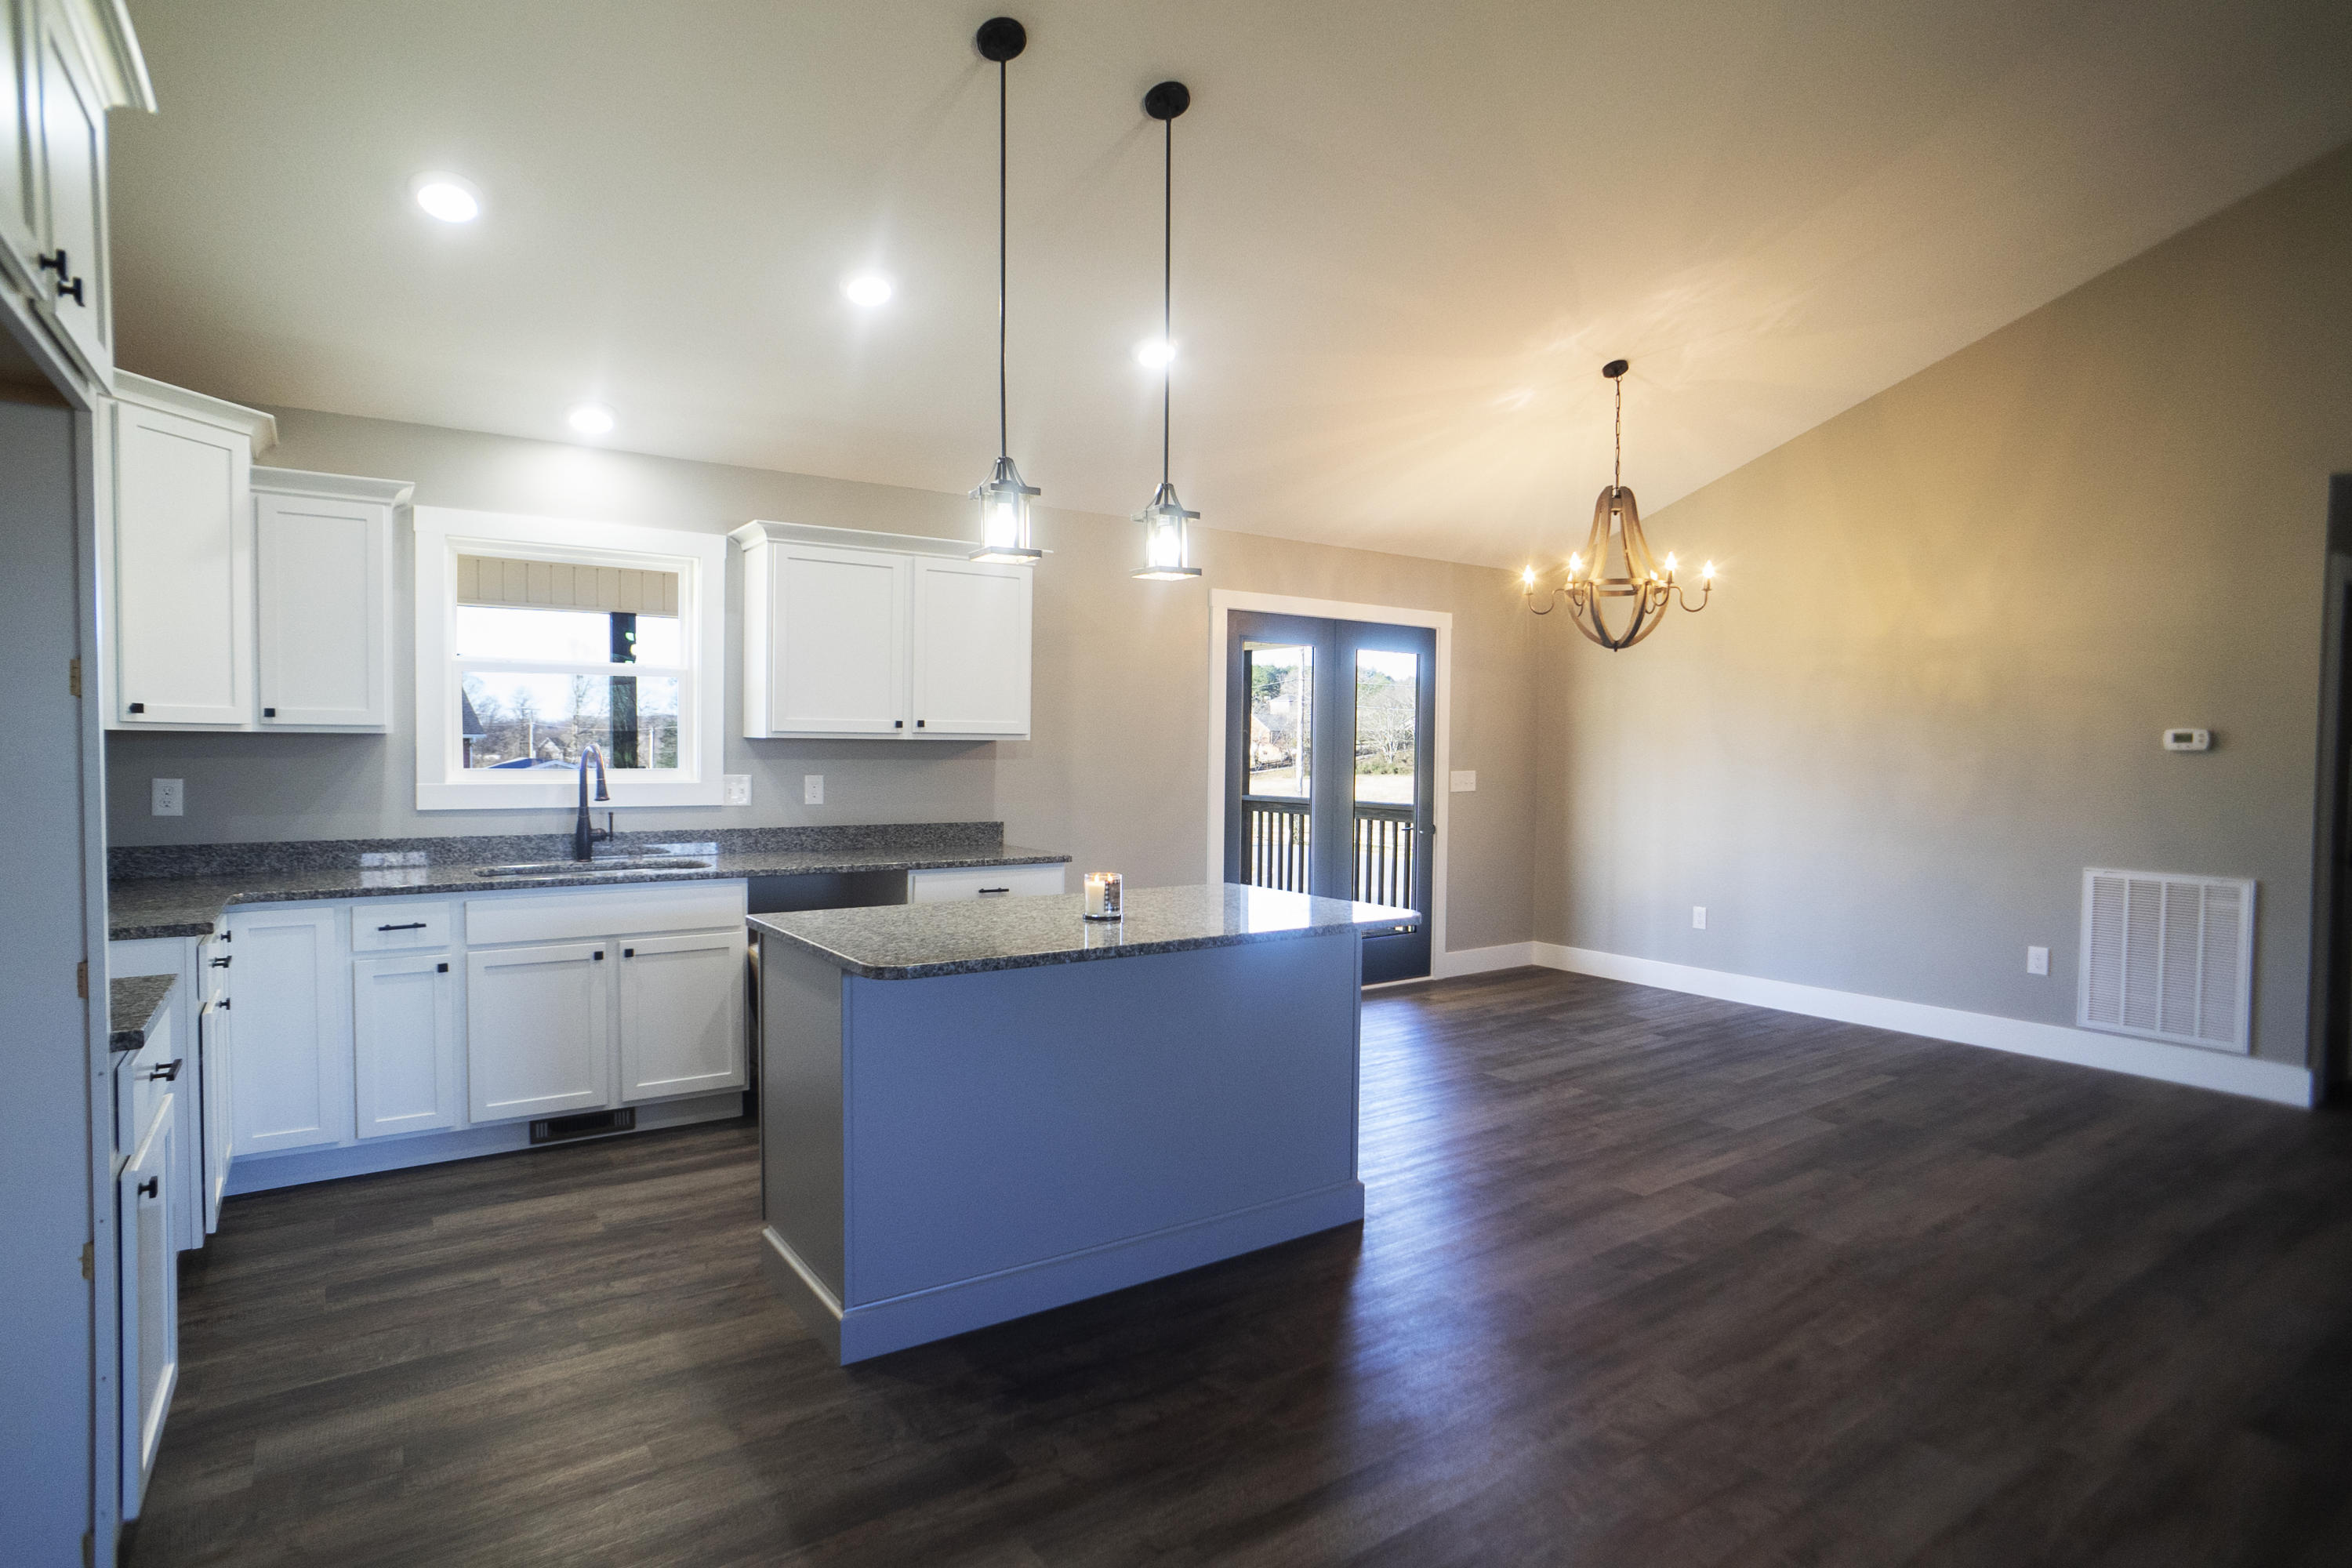 1519 Rosewood Dr Drive Preview Image 6